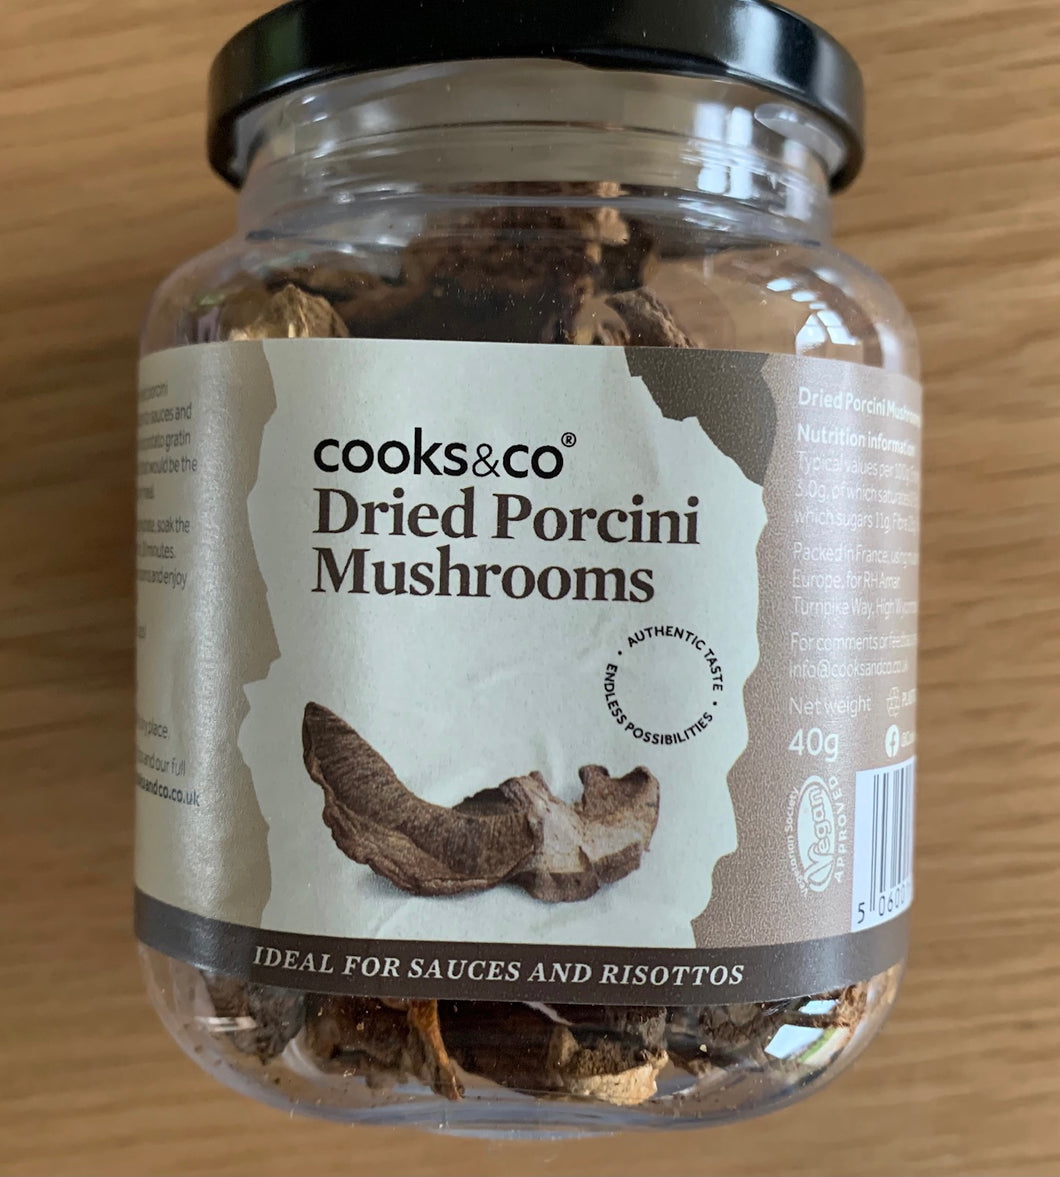 Cooks & Co Dried Porcini Mushrooms 40g